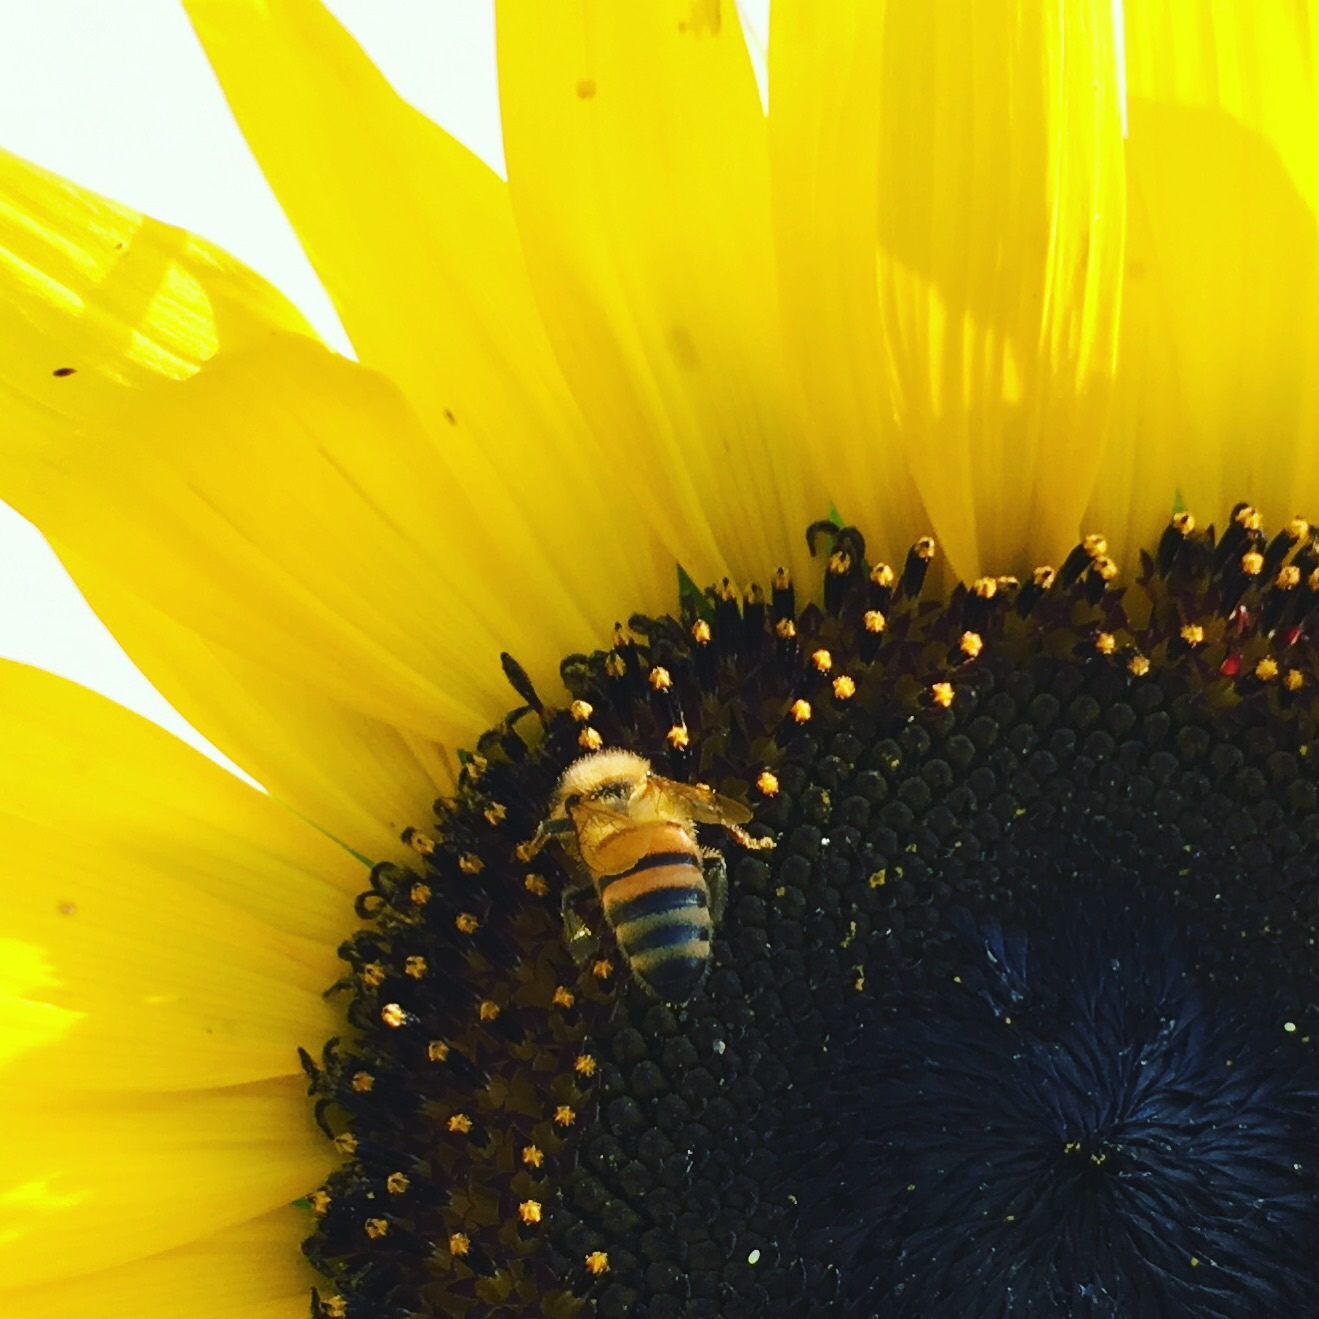 A drone bee on a sunflower